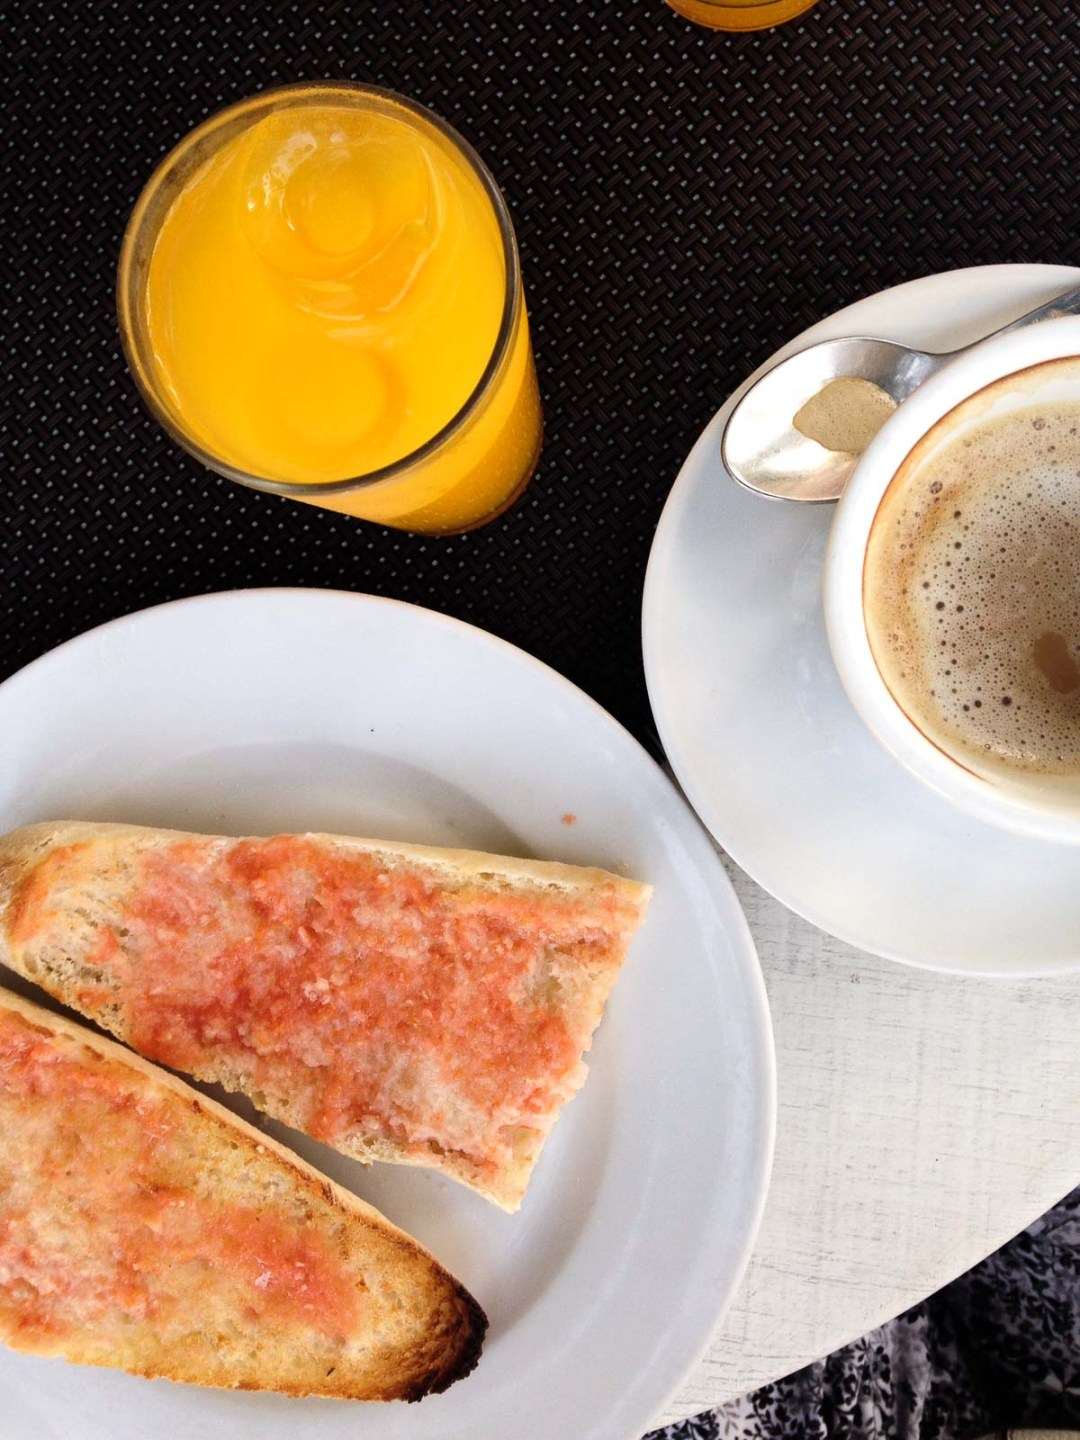 Flat lay picture of toast with tomate, juice, and coffee